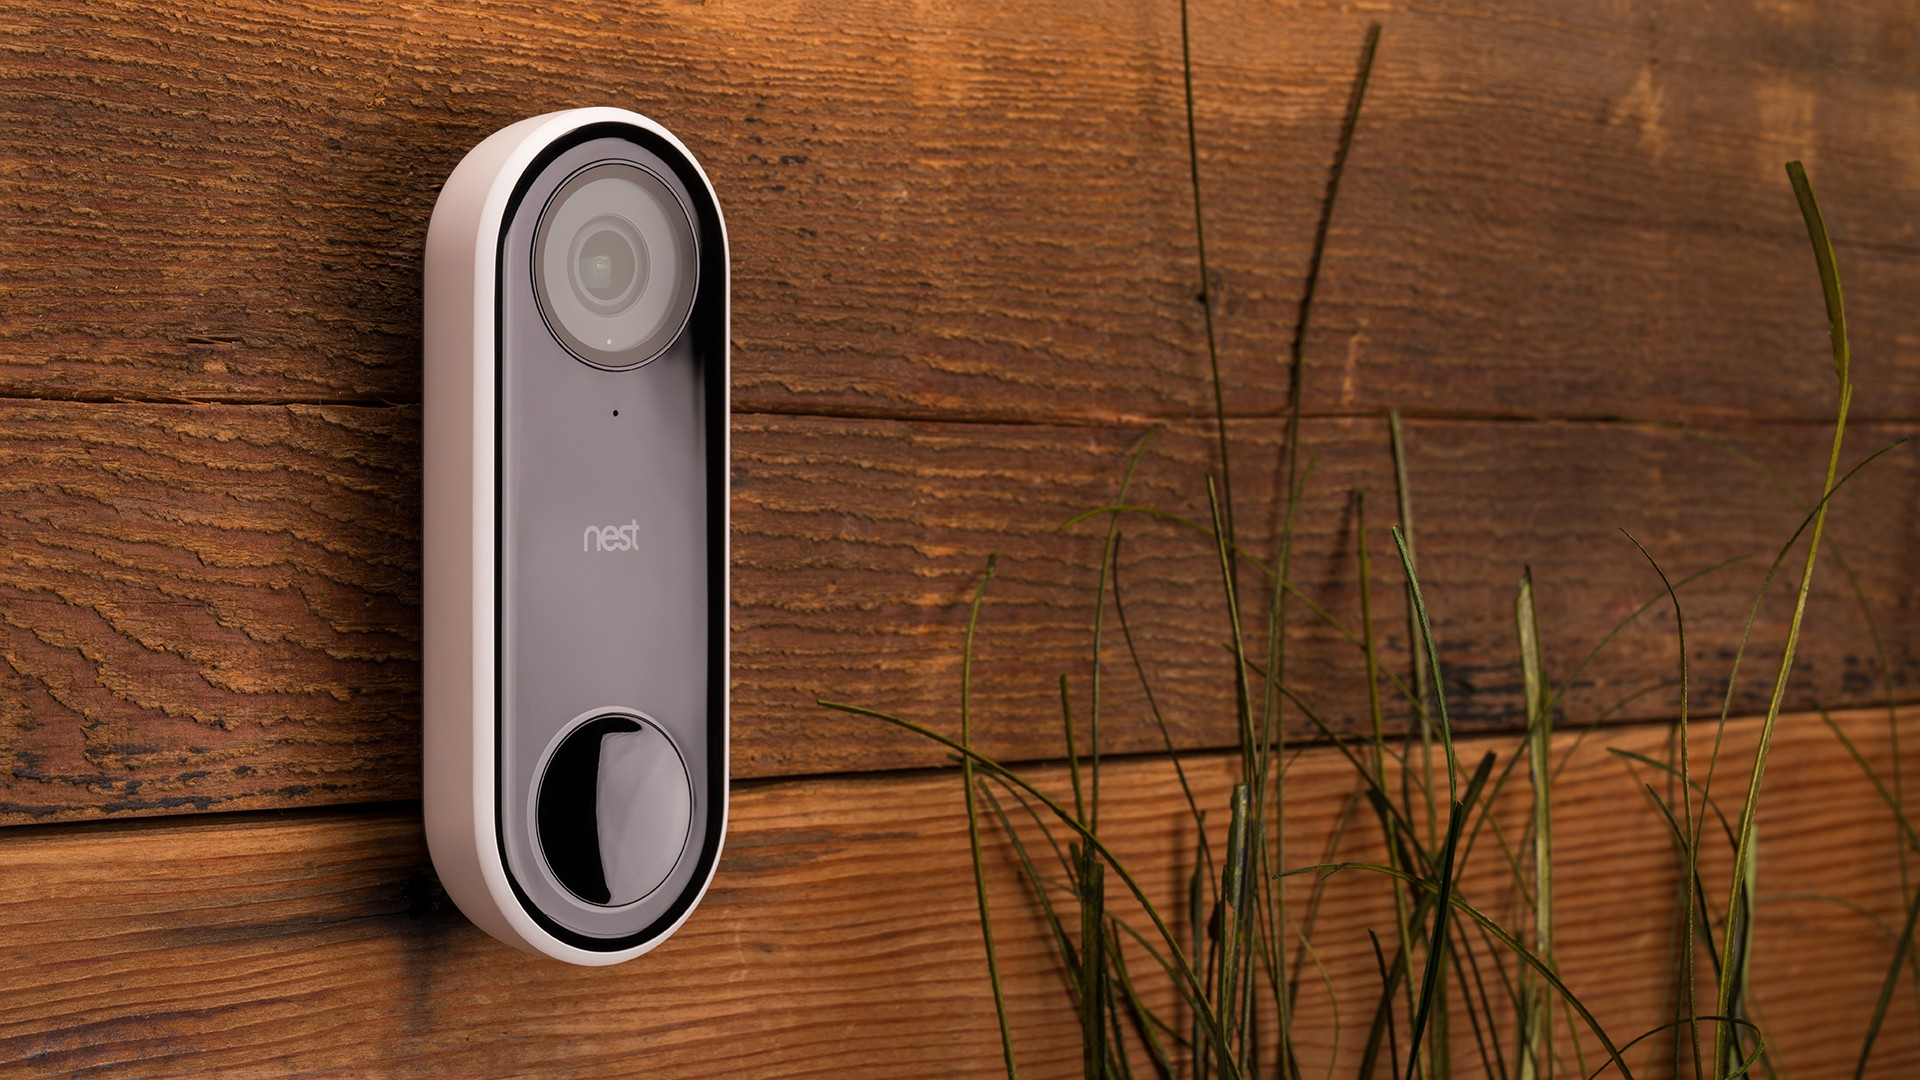 Nest Hello Video Doorbell to Monitor Front Door with 1600×1200 Resolution, Night Vision and Dual-Band Wi-Fi Connectivity